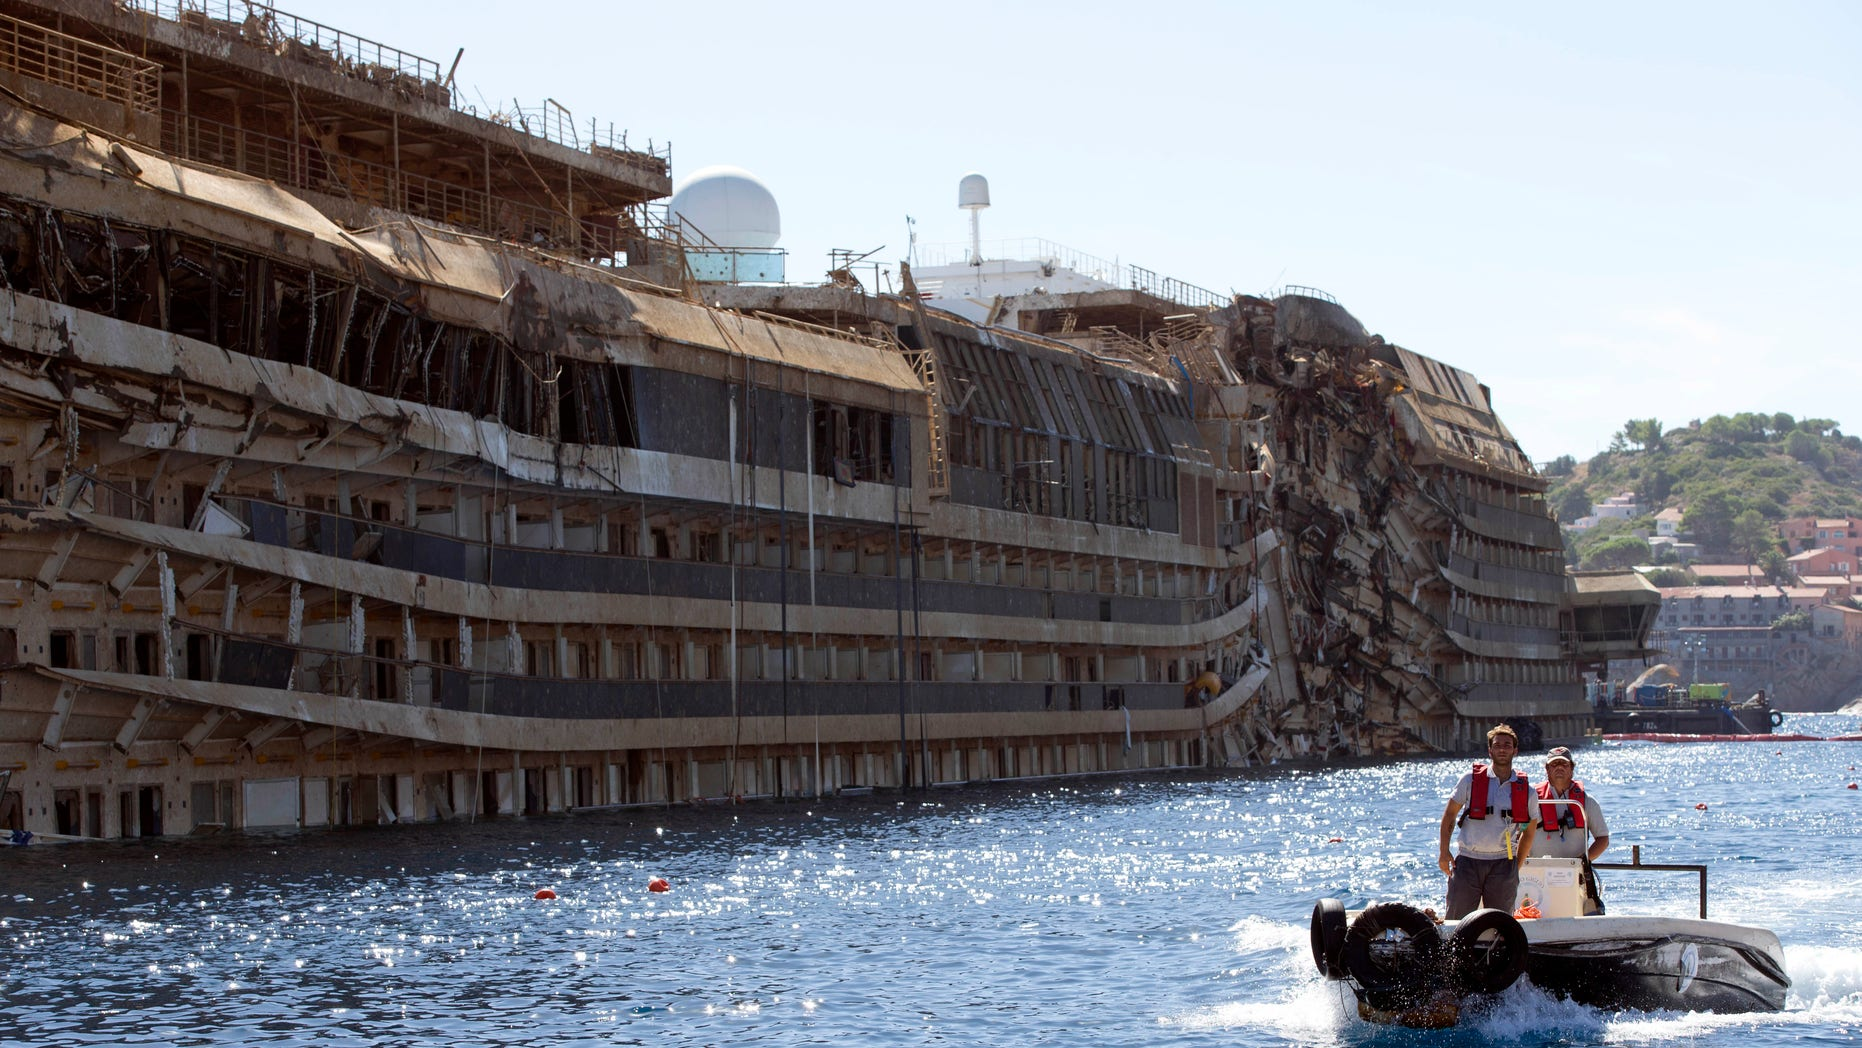 FILE - In this Sept. 18, 2013 file photo, a small boat navigates past the damaged side of the Costa Concordia ship after it was pulled upright, on the Tuscan Island of Giglio, Italy. Divers searching the submerged part of the wreck of the cruise ship have found the remains of one of the two people still missing from the 2012 disaster. Officials believe the remains belong to Russel Rebello, an Indian waiter. Thirty-two people died when the Concordia slammed into a reef off the Tuscan island of Giglio and capsized on Jan. 13, 2012. (AP Photo/Andrew Medichini, file)